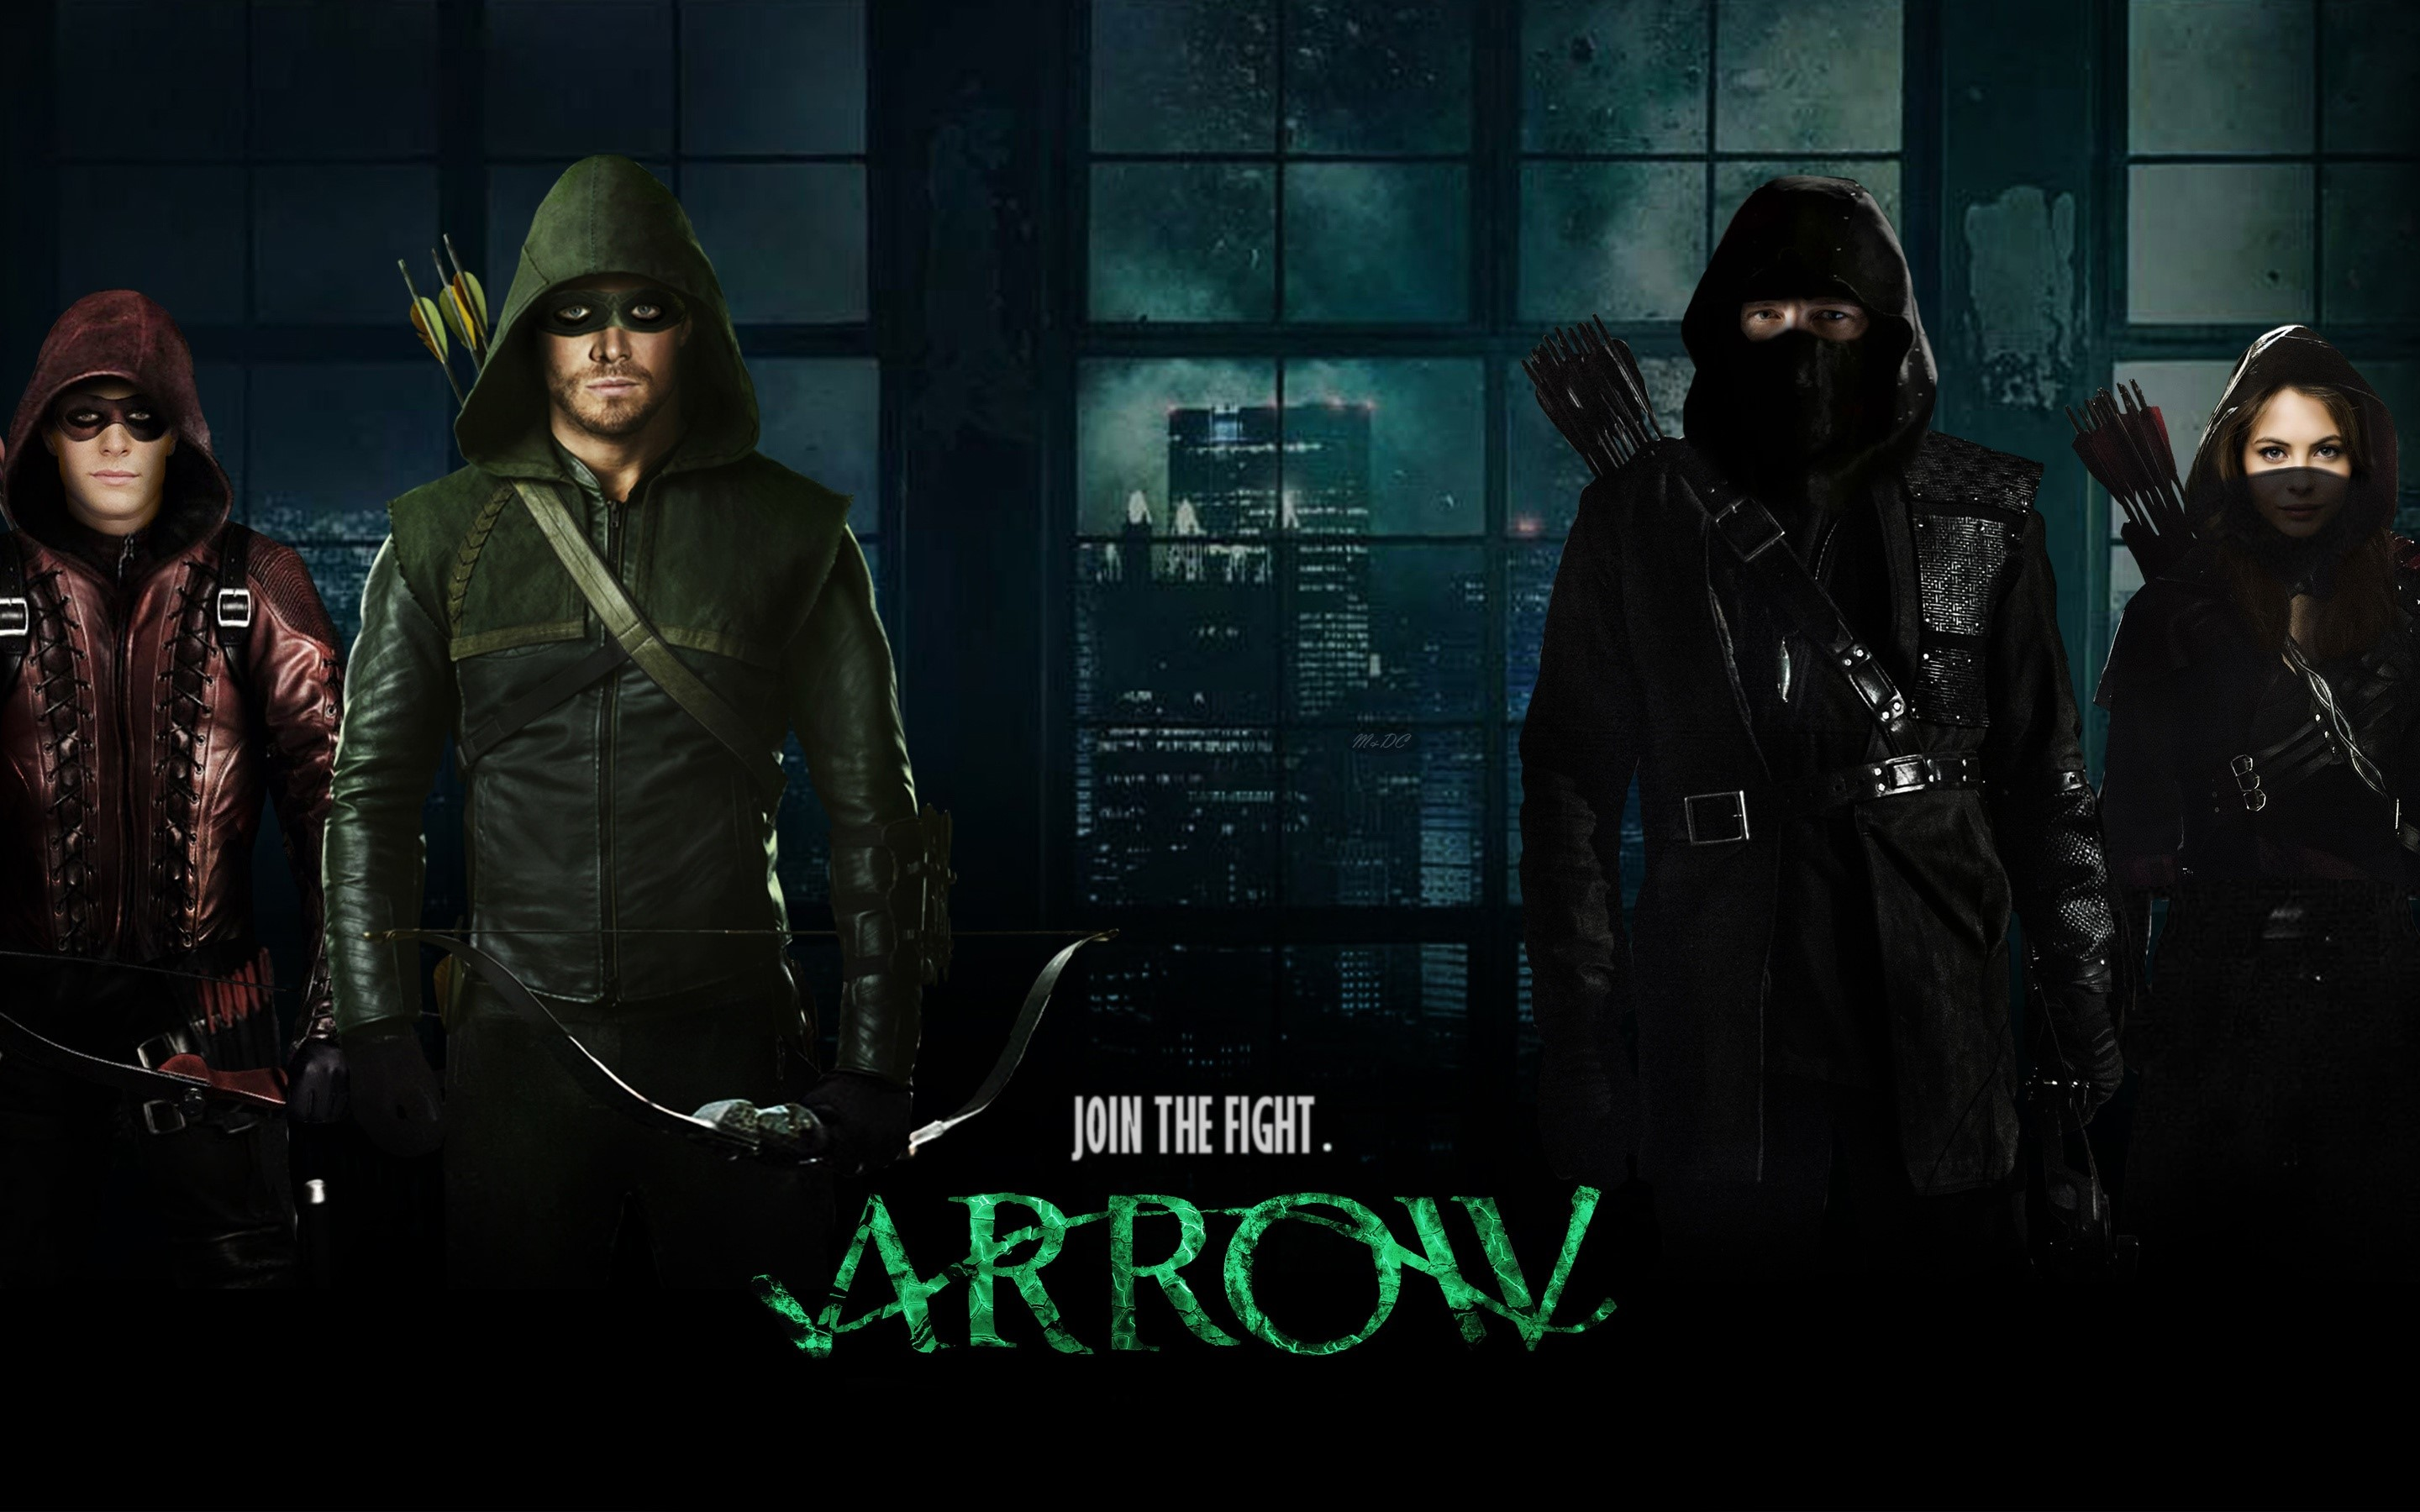 Wallpaper Arrow in Season 3